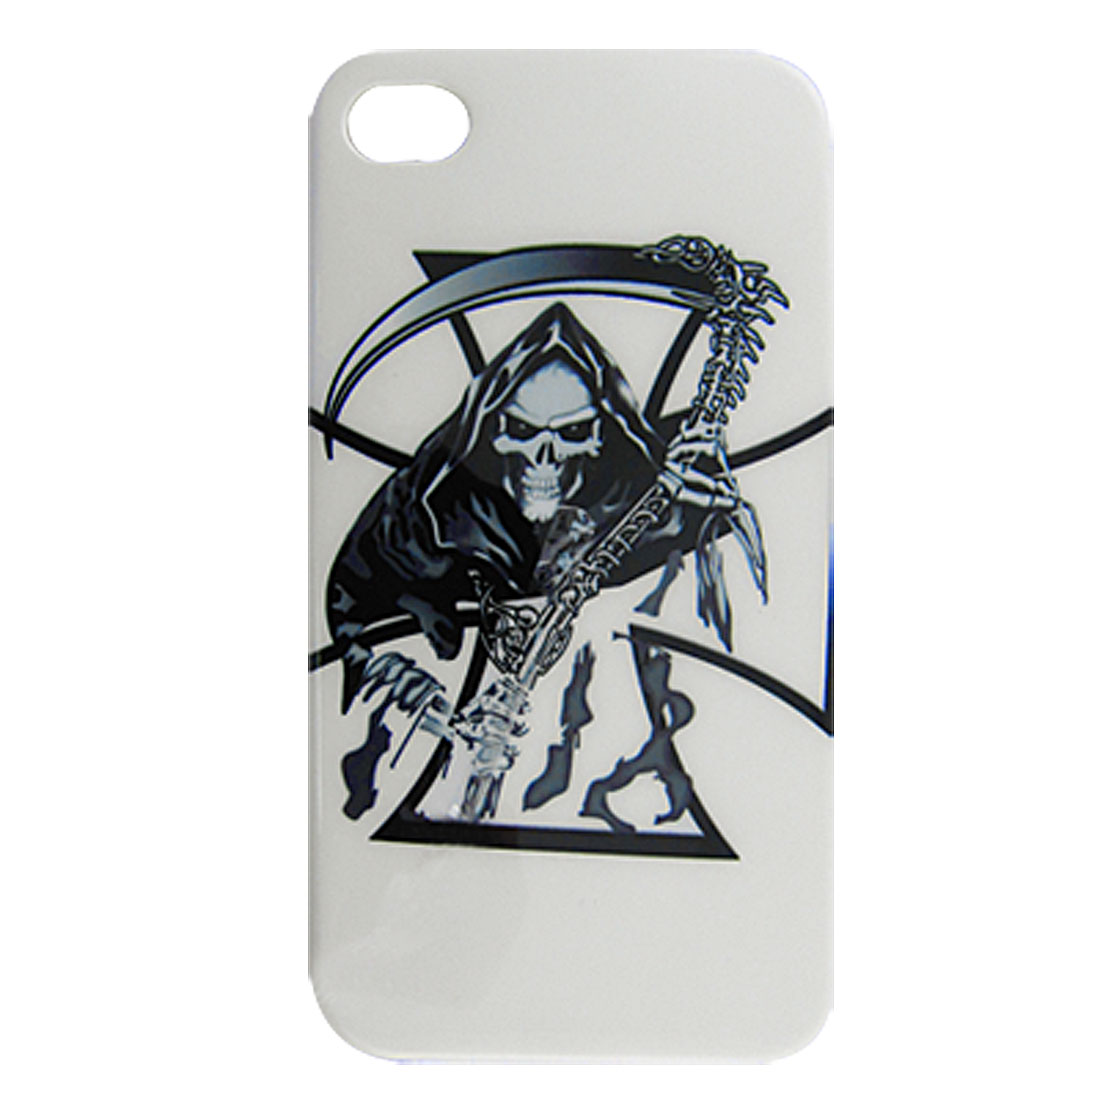 the Angle of Death Hard Plastic Back Case + Car Chagrer for iPhone 4G 4